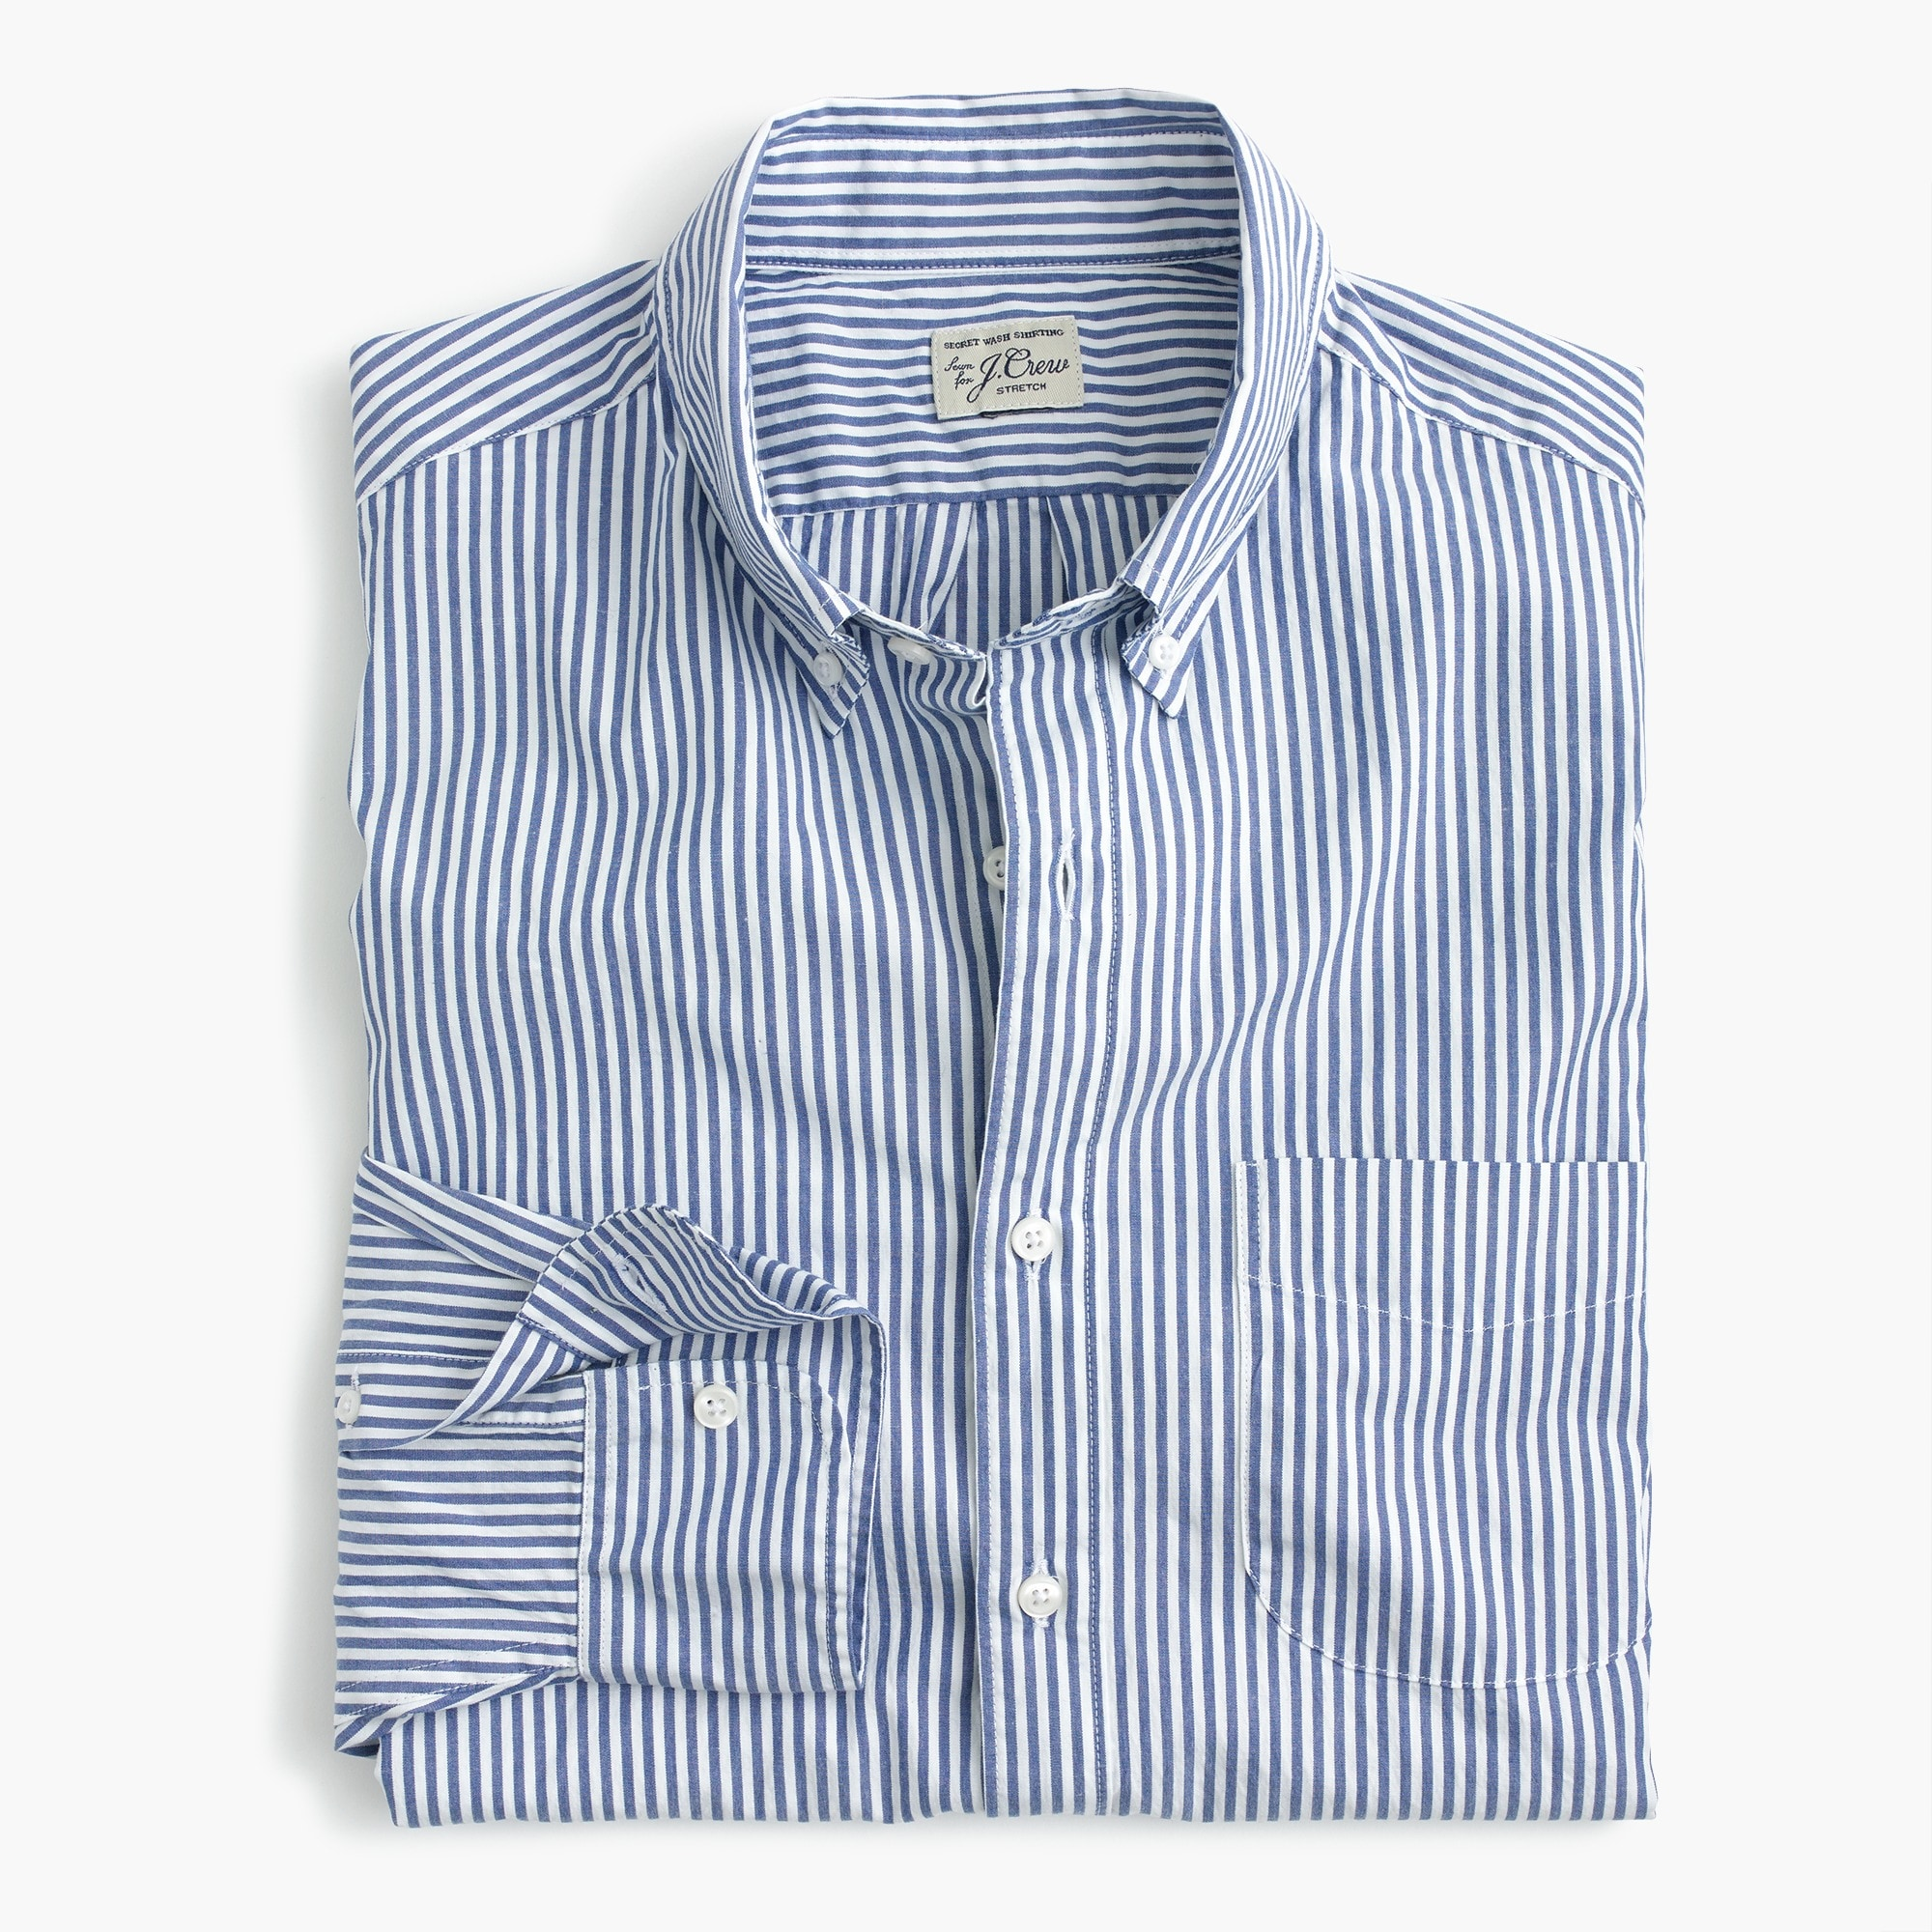 mens Stretch Secret Wash shirt in poplin